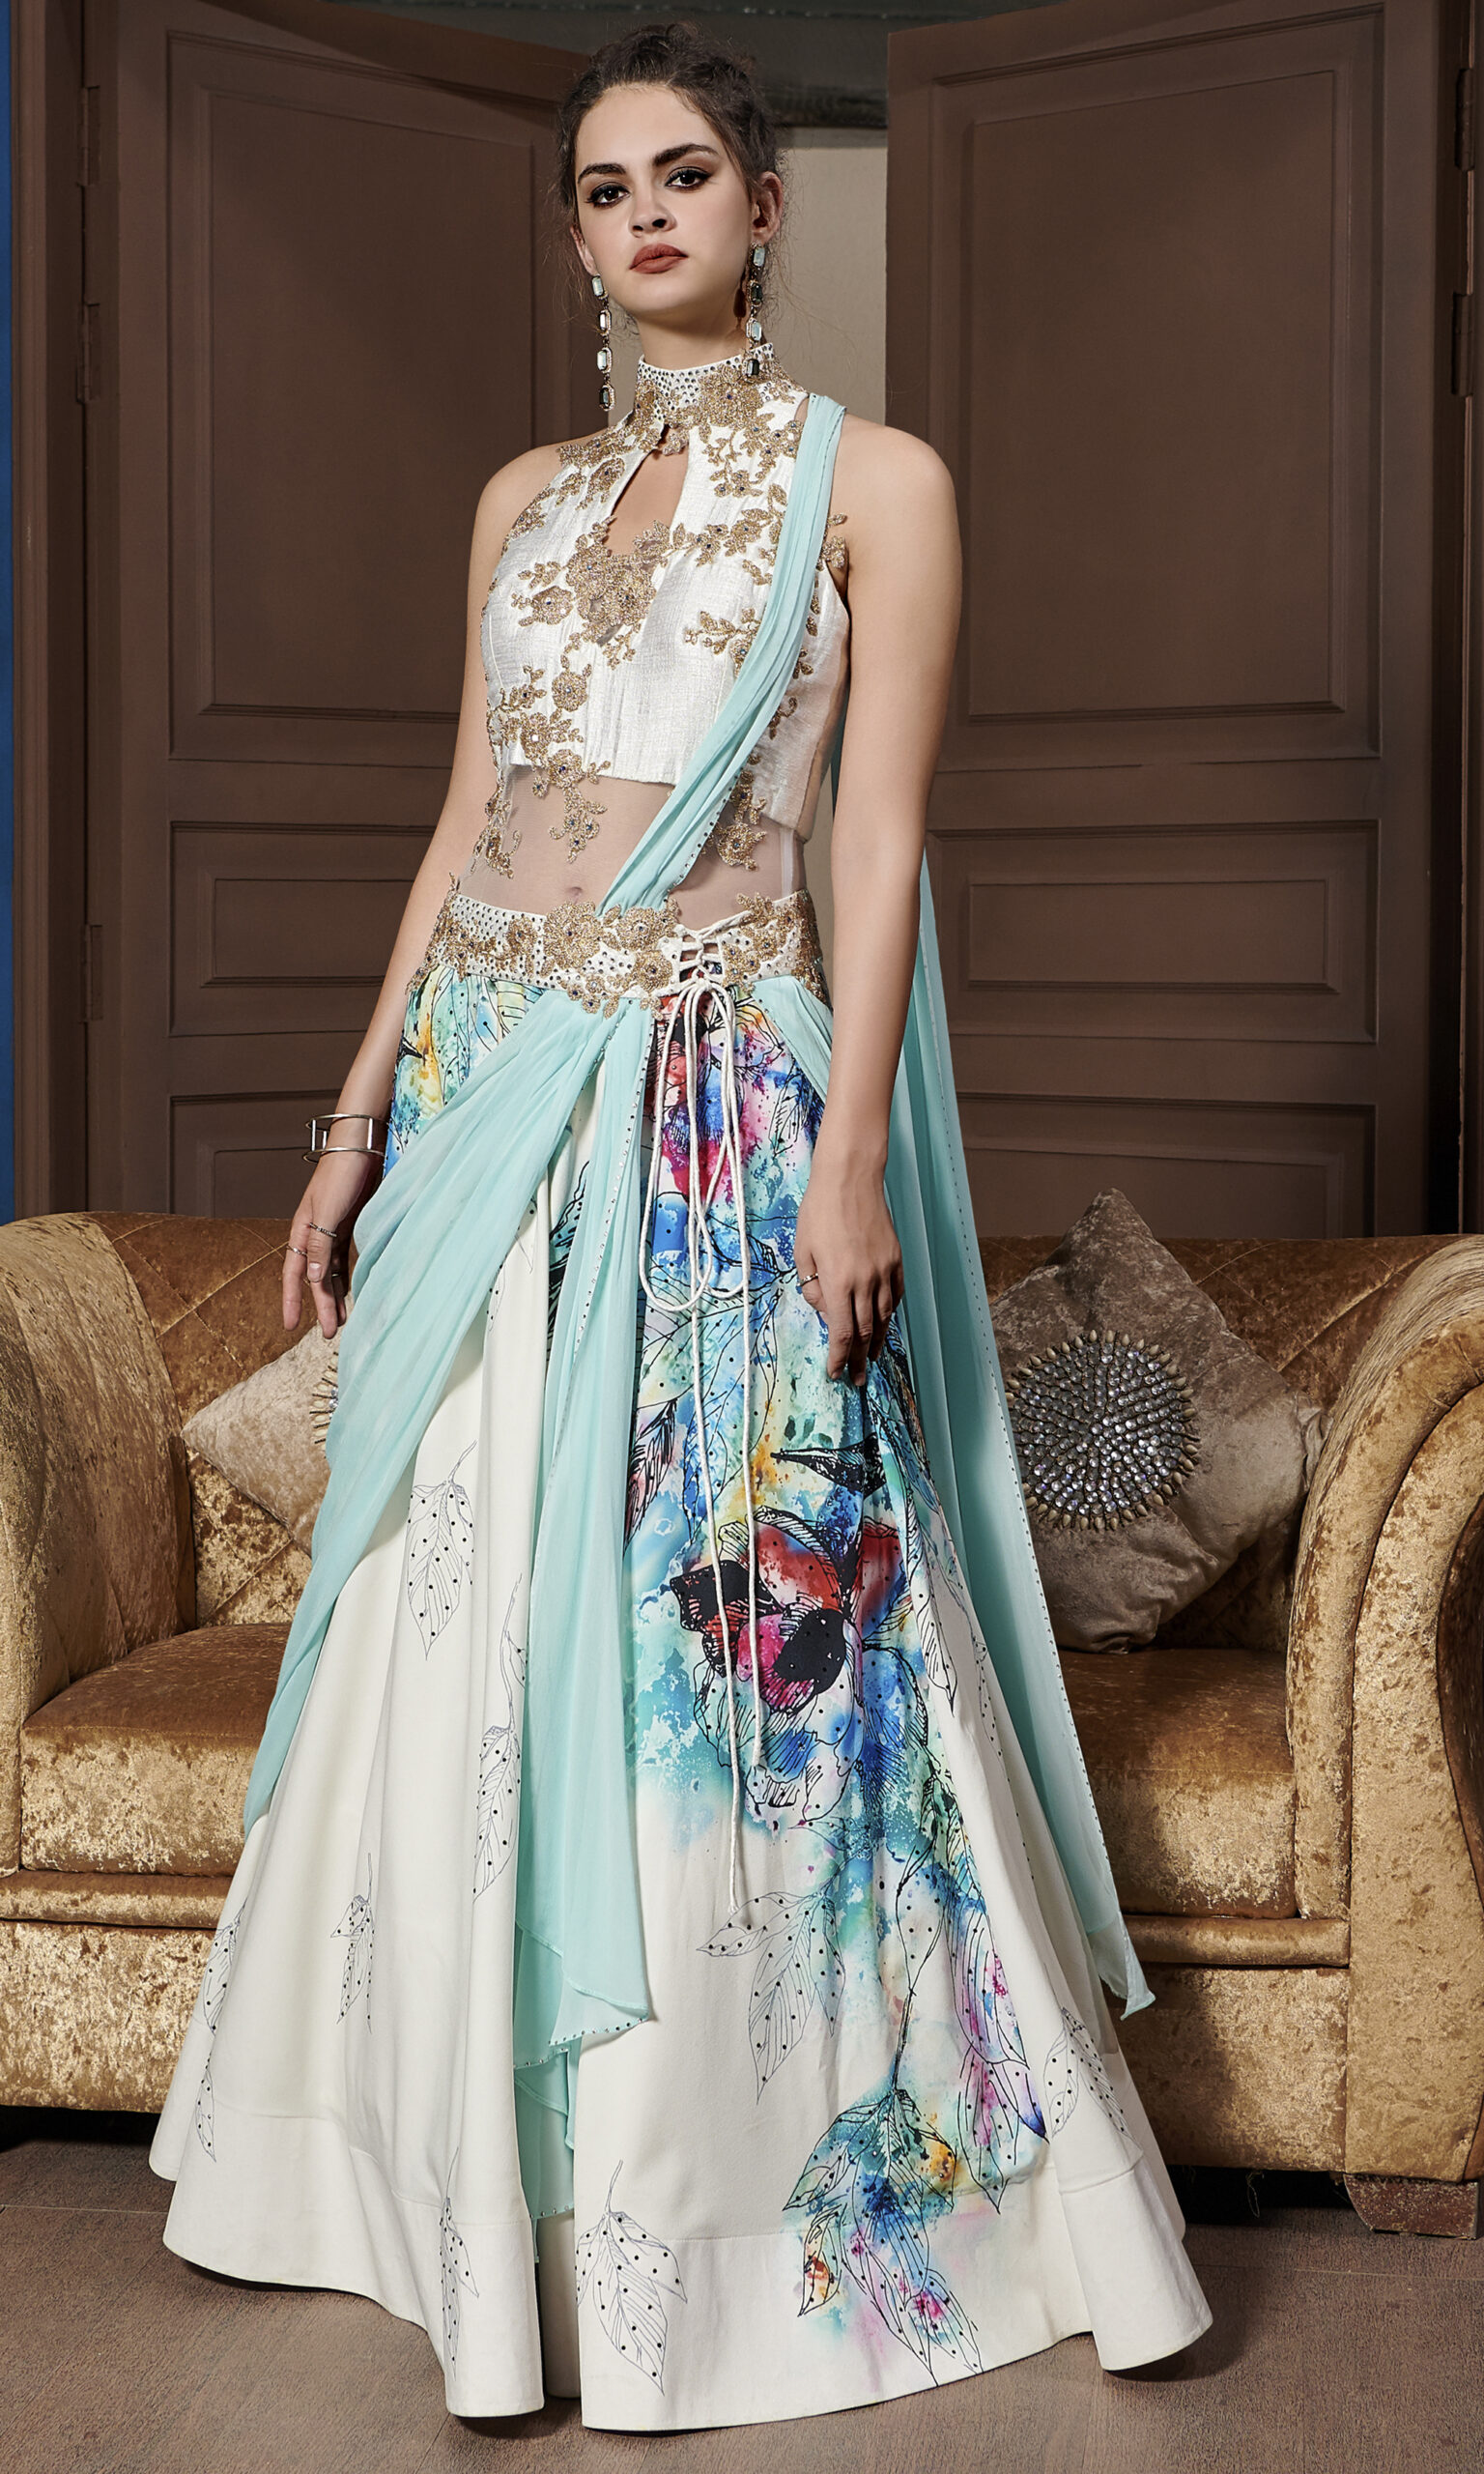 Latest Best Floral Lehenga Skyblue with Off White Combination